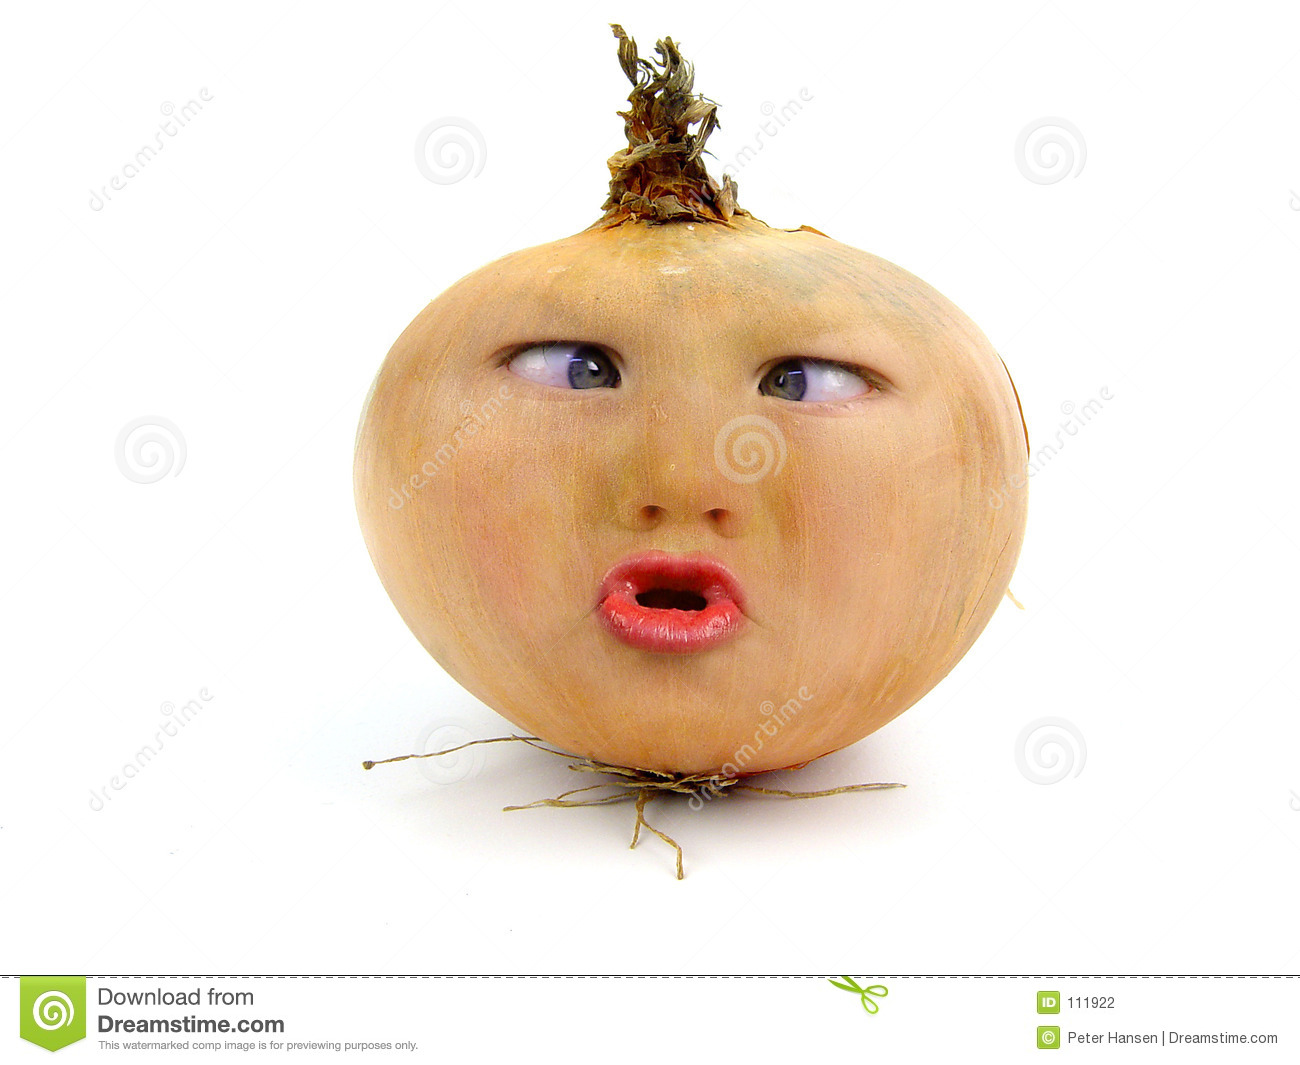 Mr Onion Stock Photography - Image: 111922